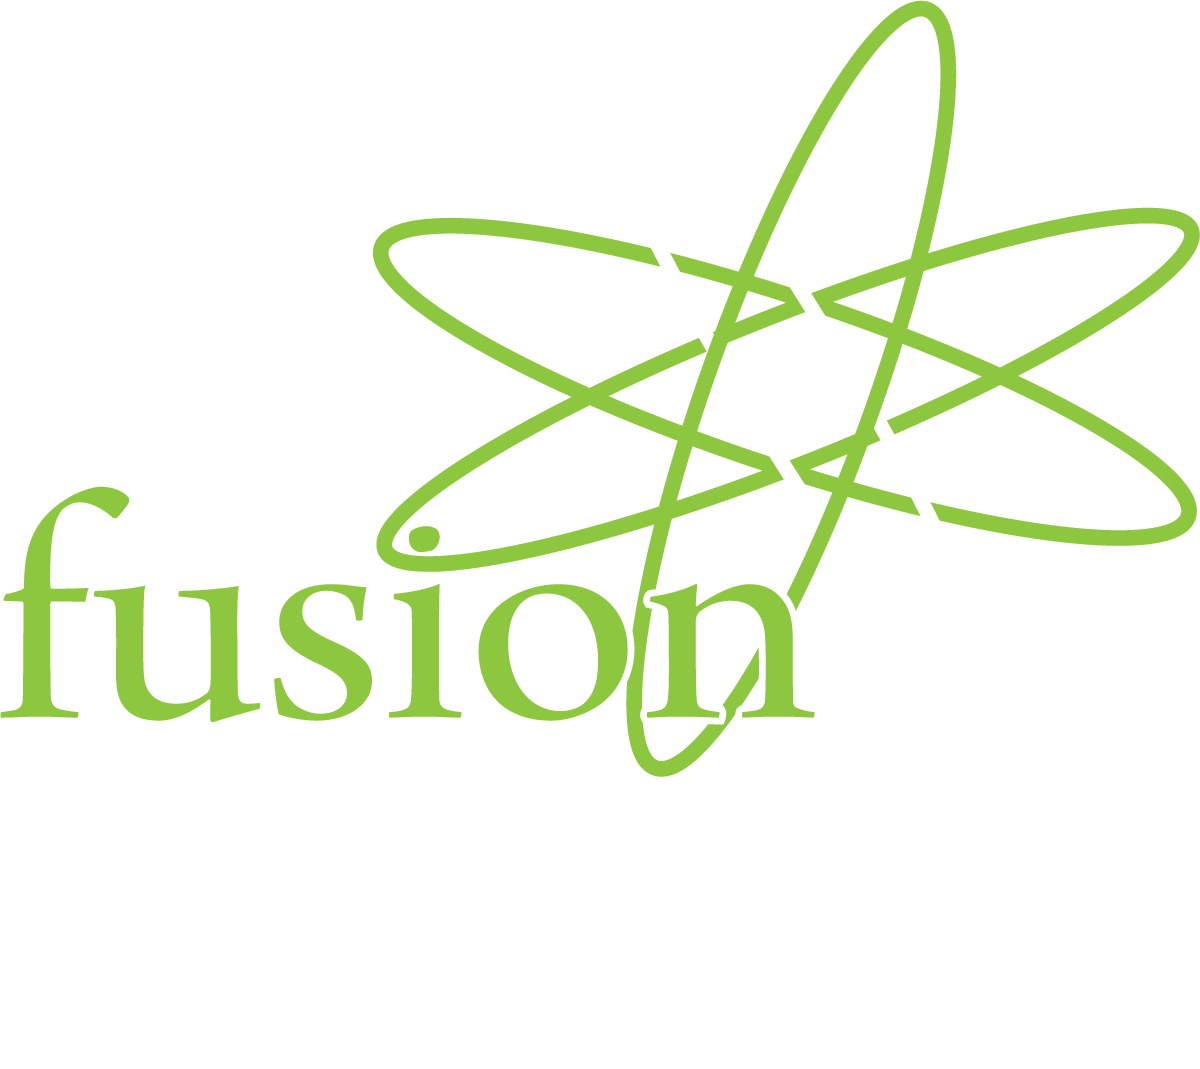 Shockwave effect png. Laser fusion physiotherapy wellness